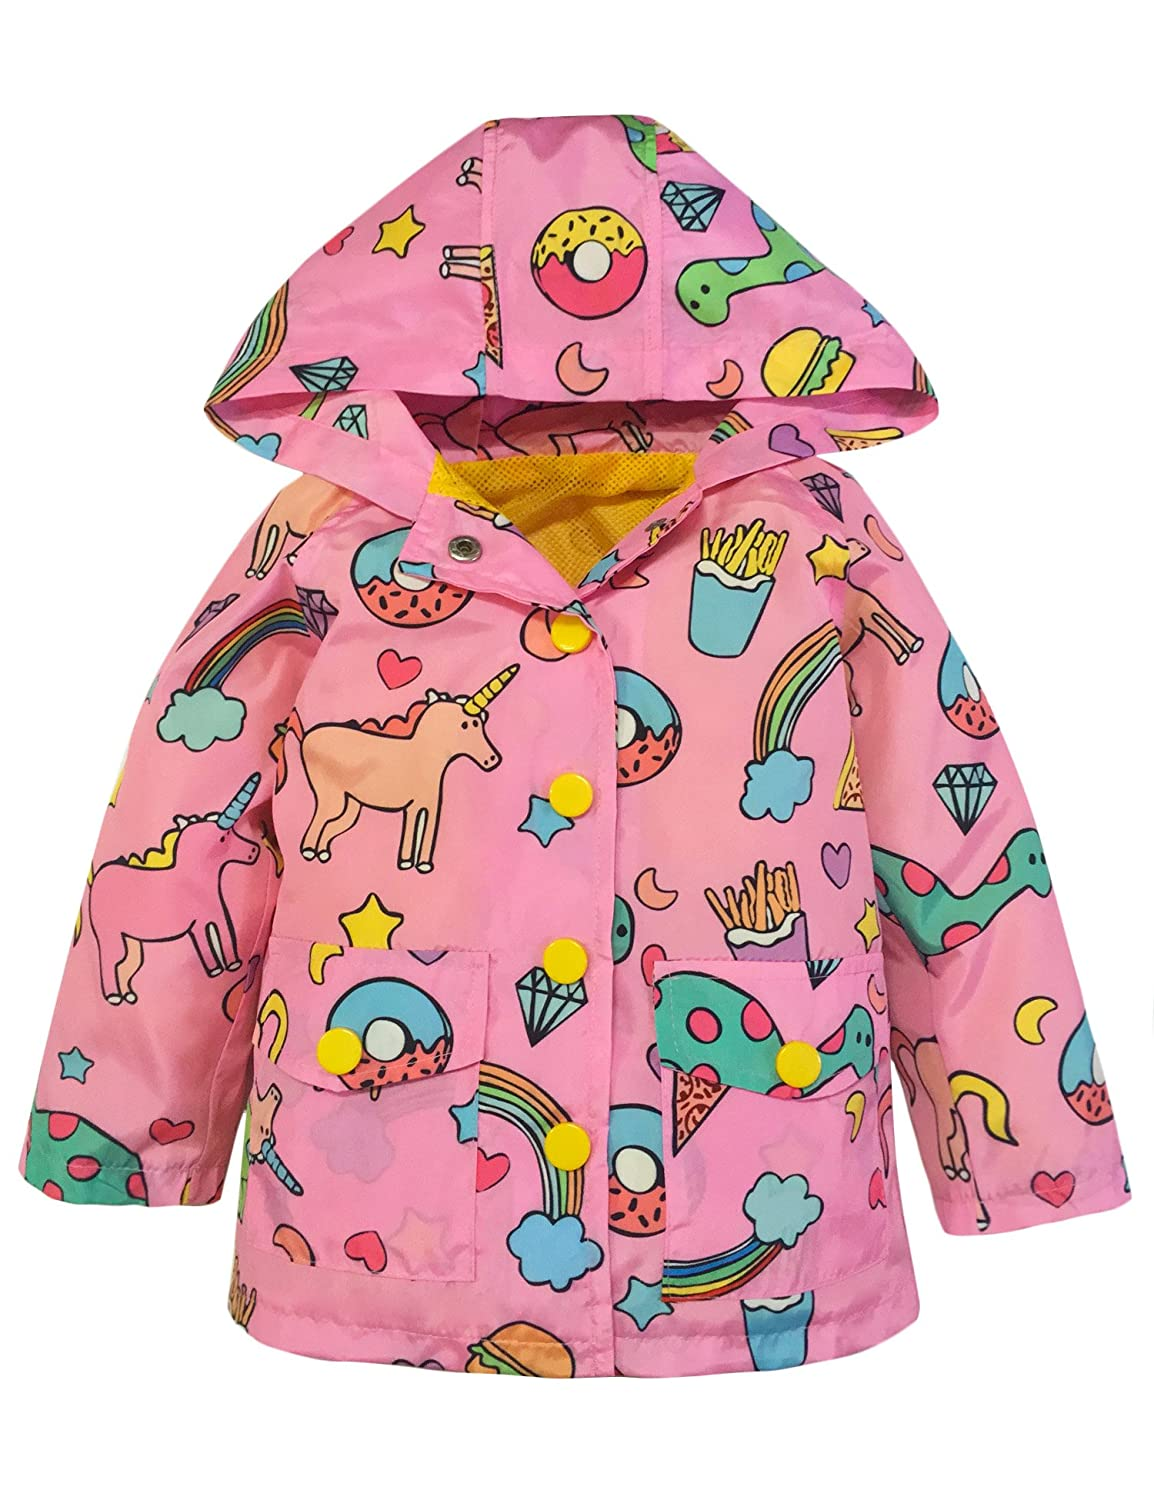 YNIQ Girls' Lightweight Unicorn Print Raincoats